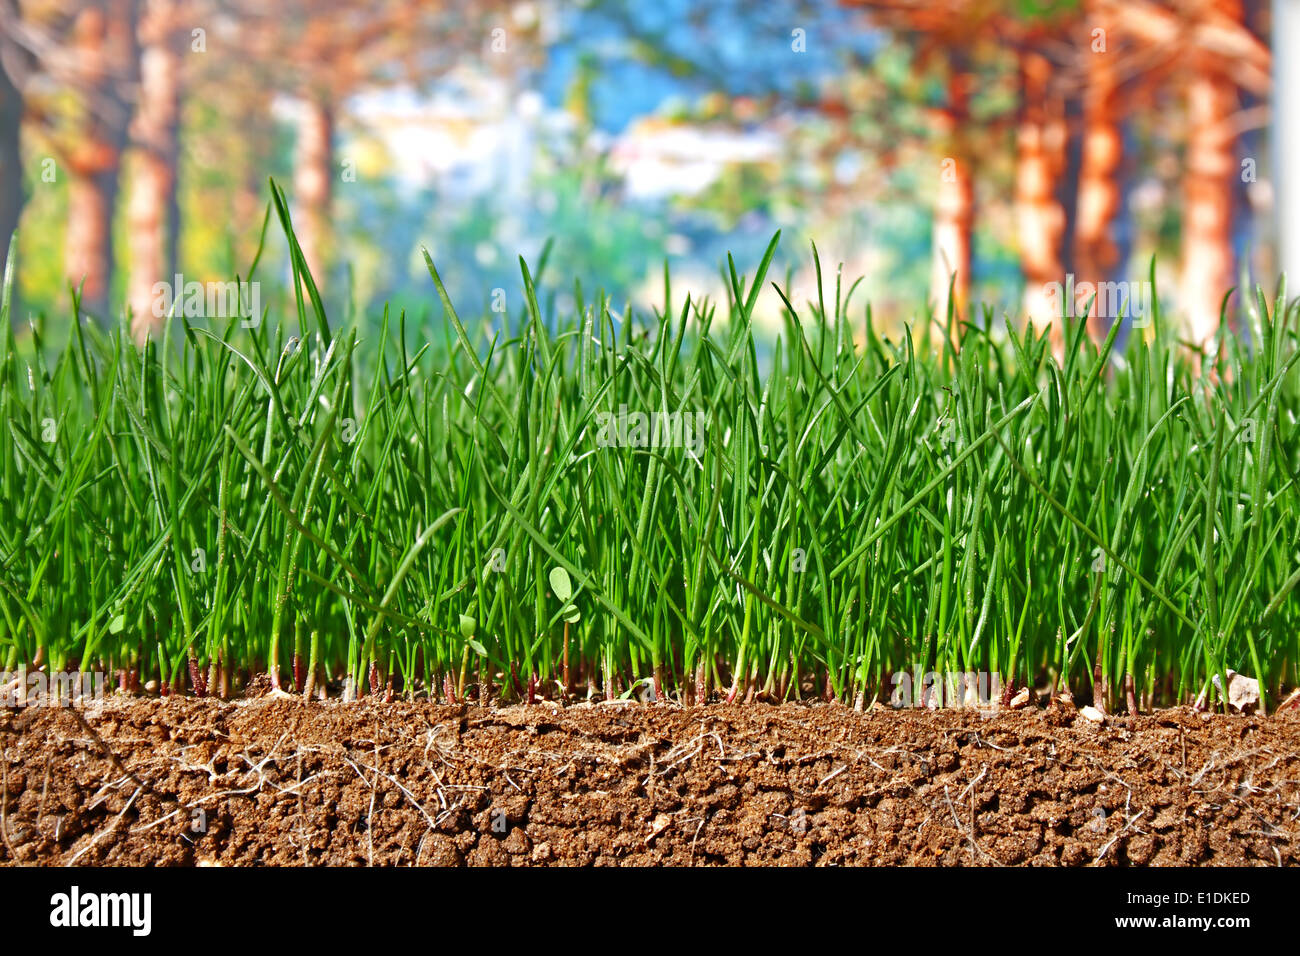 sown grass stockfotos sown grass bilder alamy. Black Bedroom Furniture Sets. Home Design Ideas